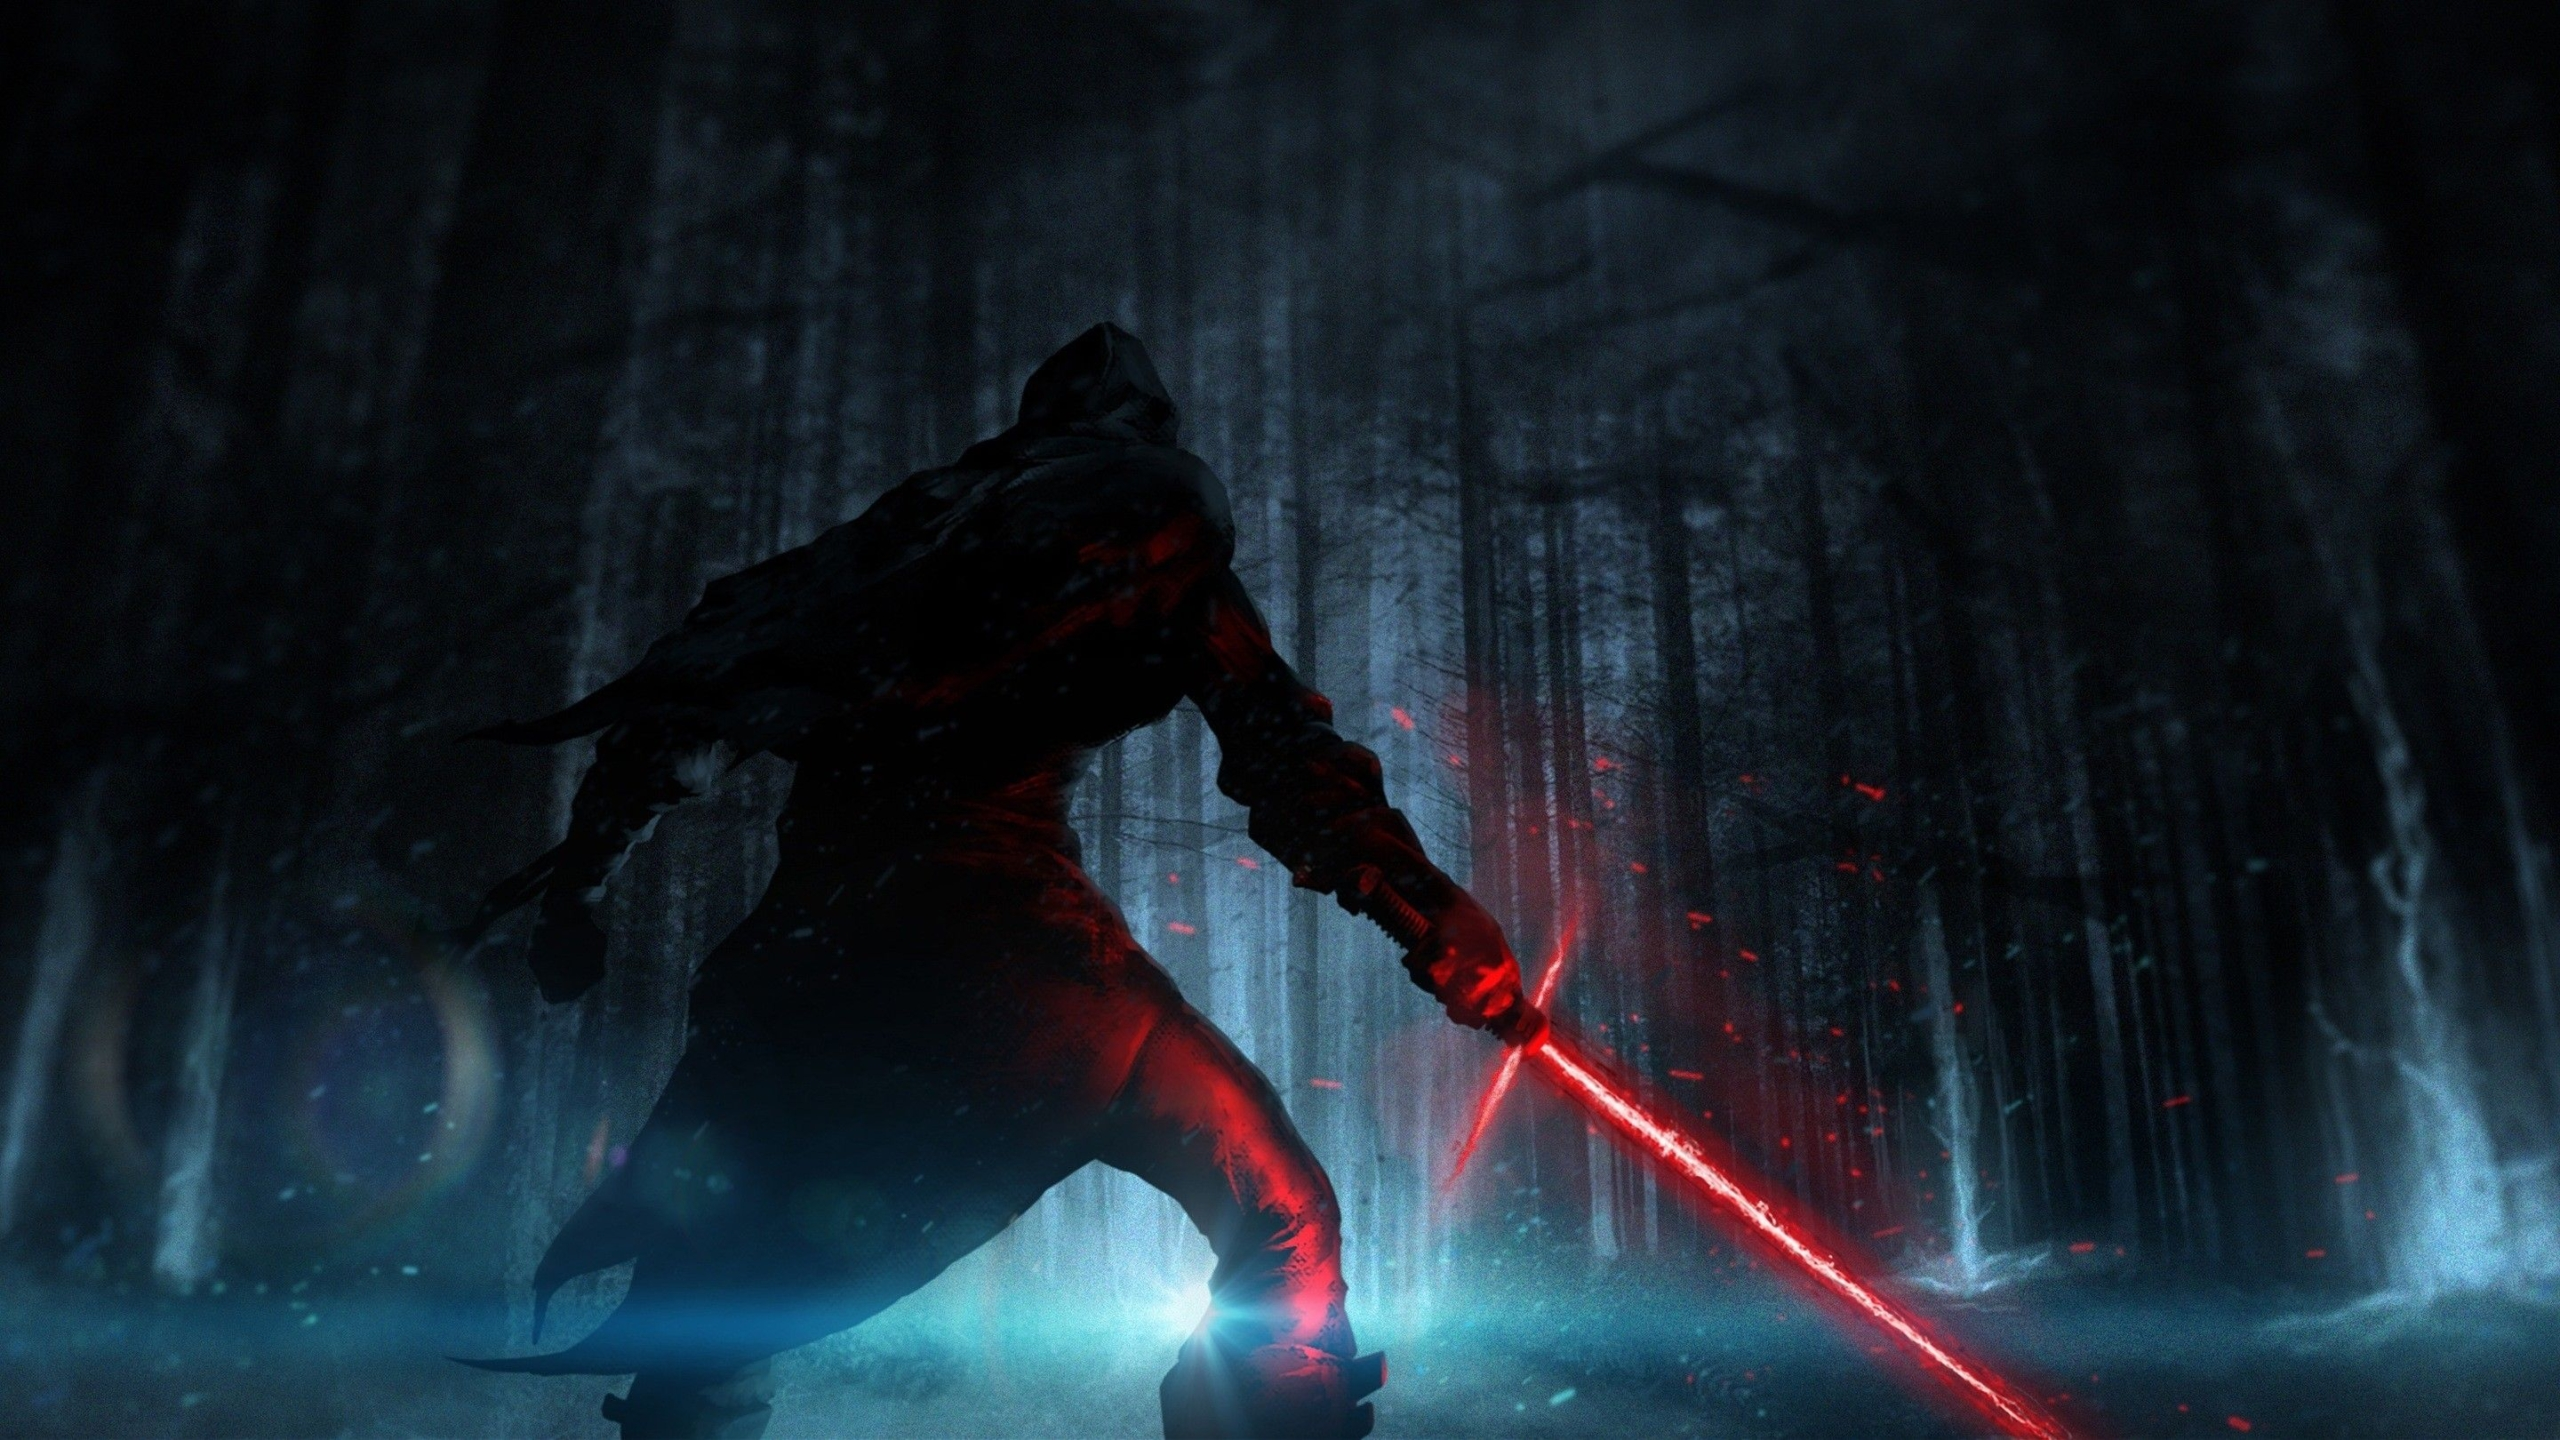 A New Option to Have Your Own Kylo Ren Wallpaper